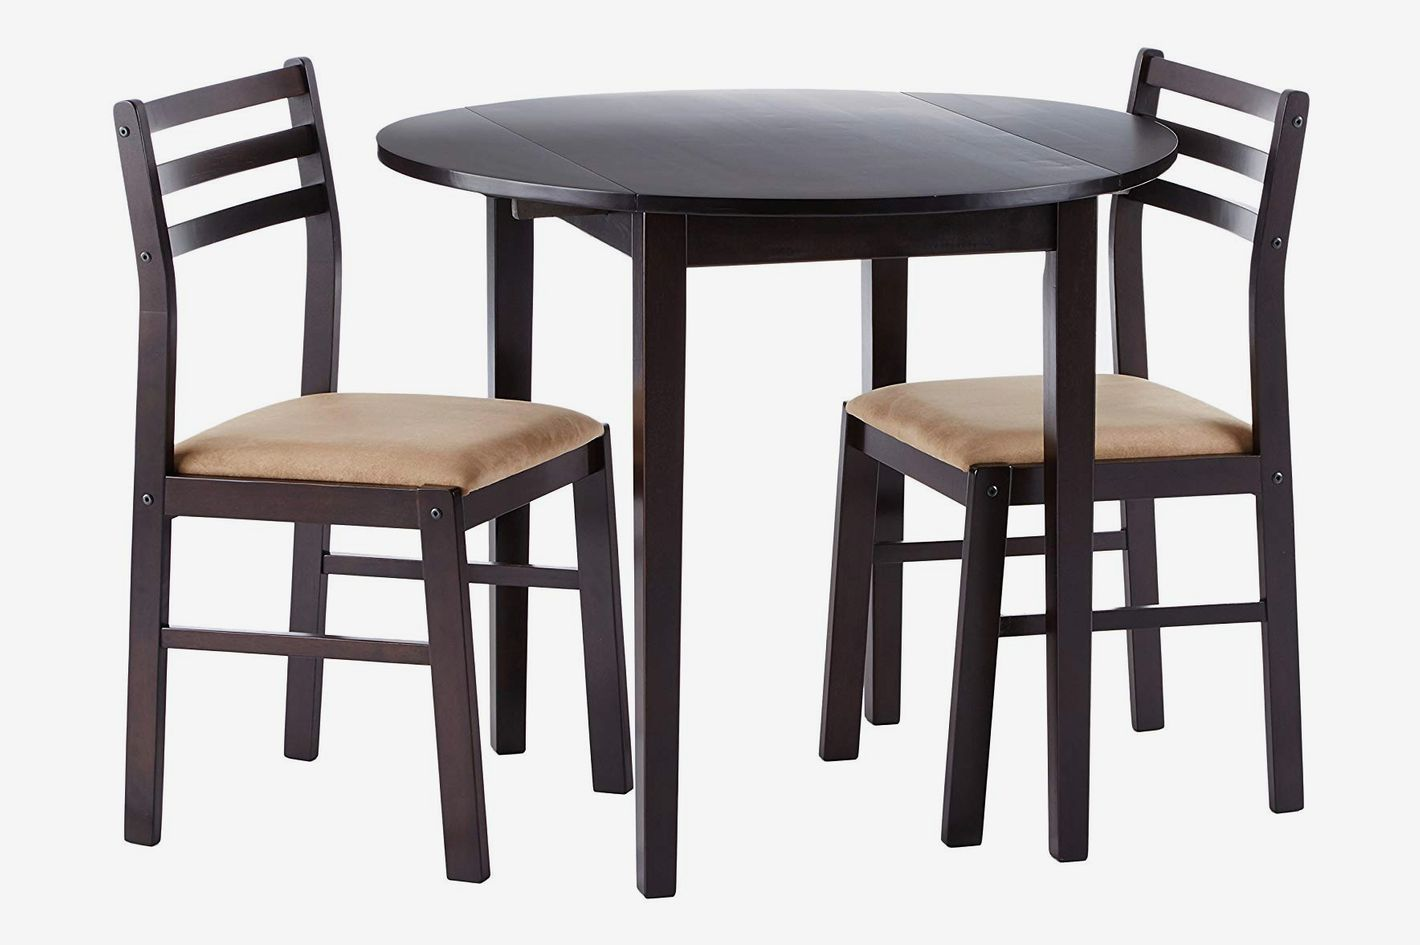 Coaster Home Furnishings 3-piece Dining Set with Drop Leaf, Cappuccino and Tan